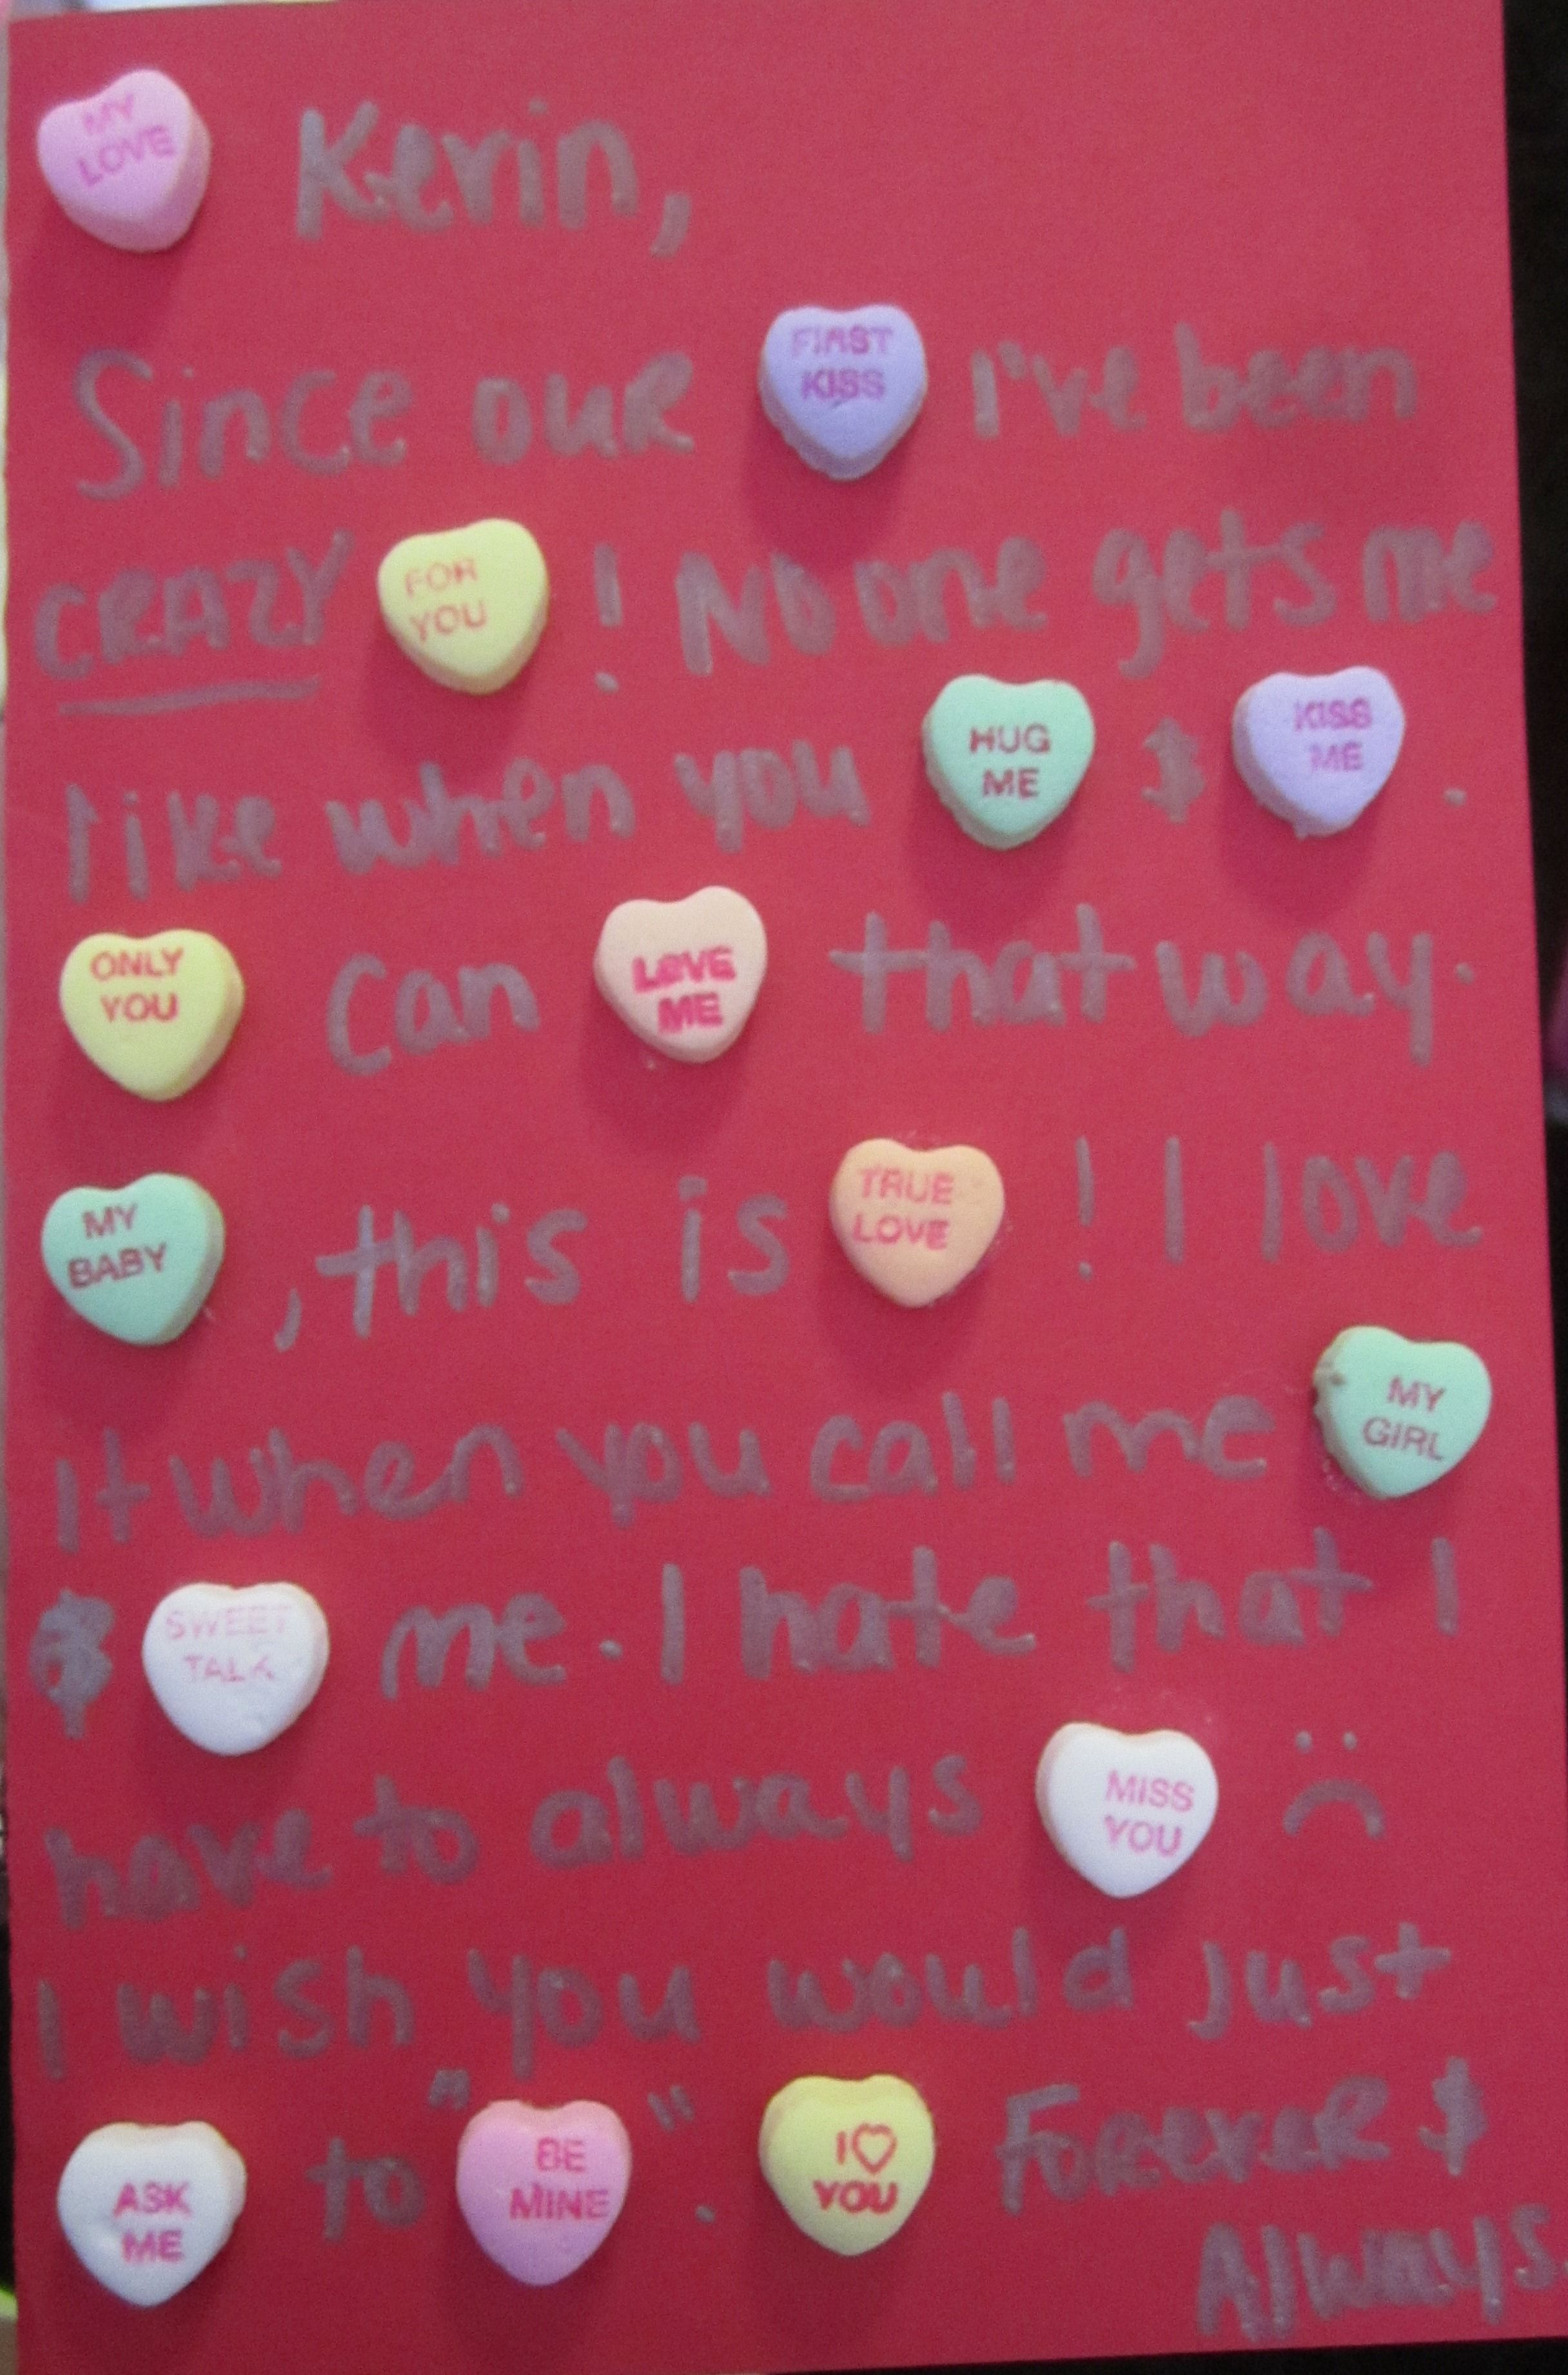 The card I made for my boyfriend for Valentines Day It says – Valentines Card for My Boyfriend